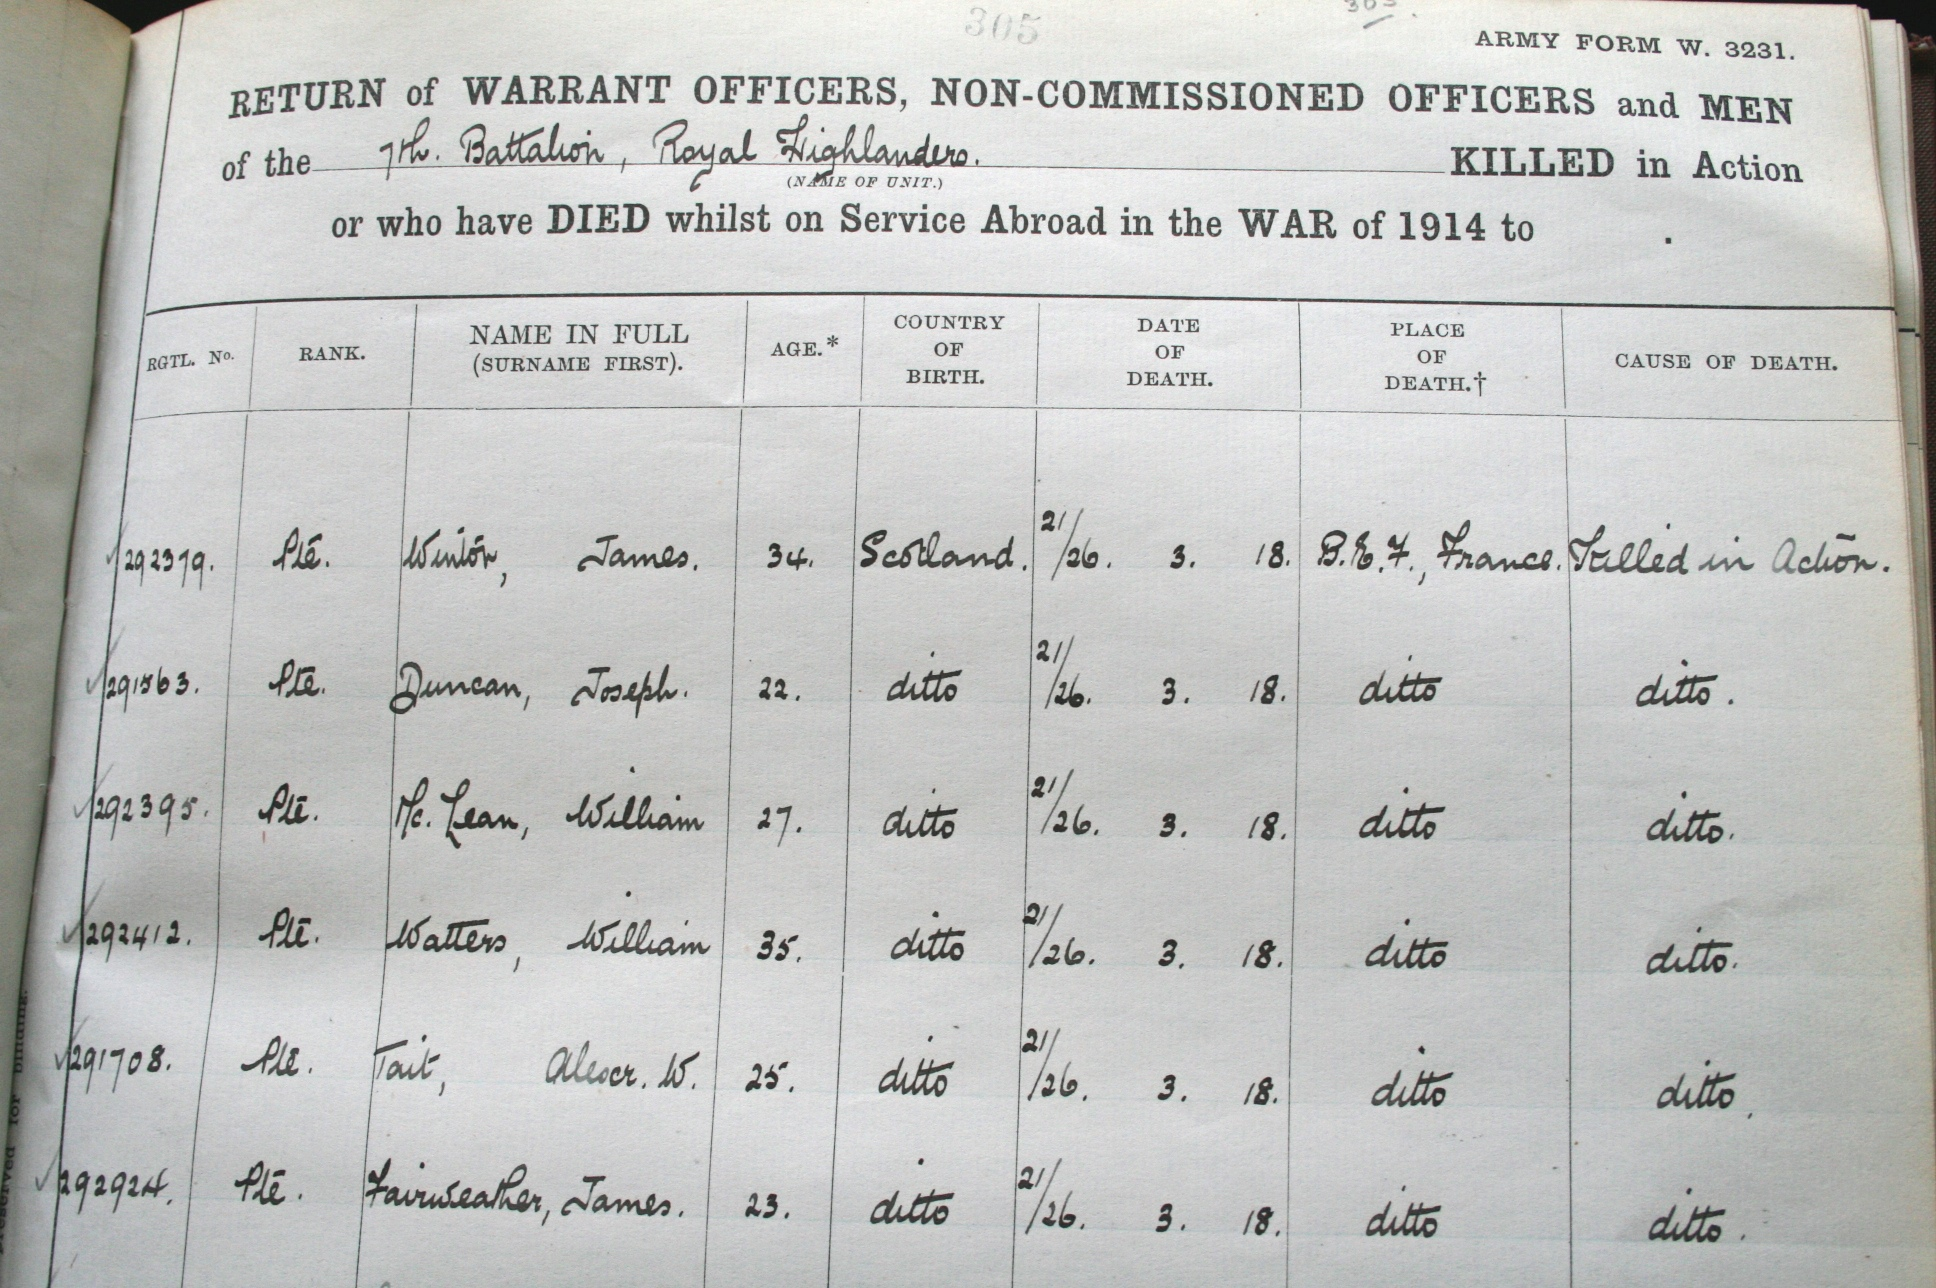 Death of NCOs and other ranks of 1/7th Battalion, Black Watch, 21-26 March 1918